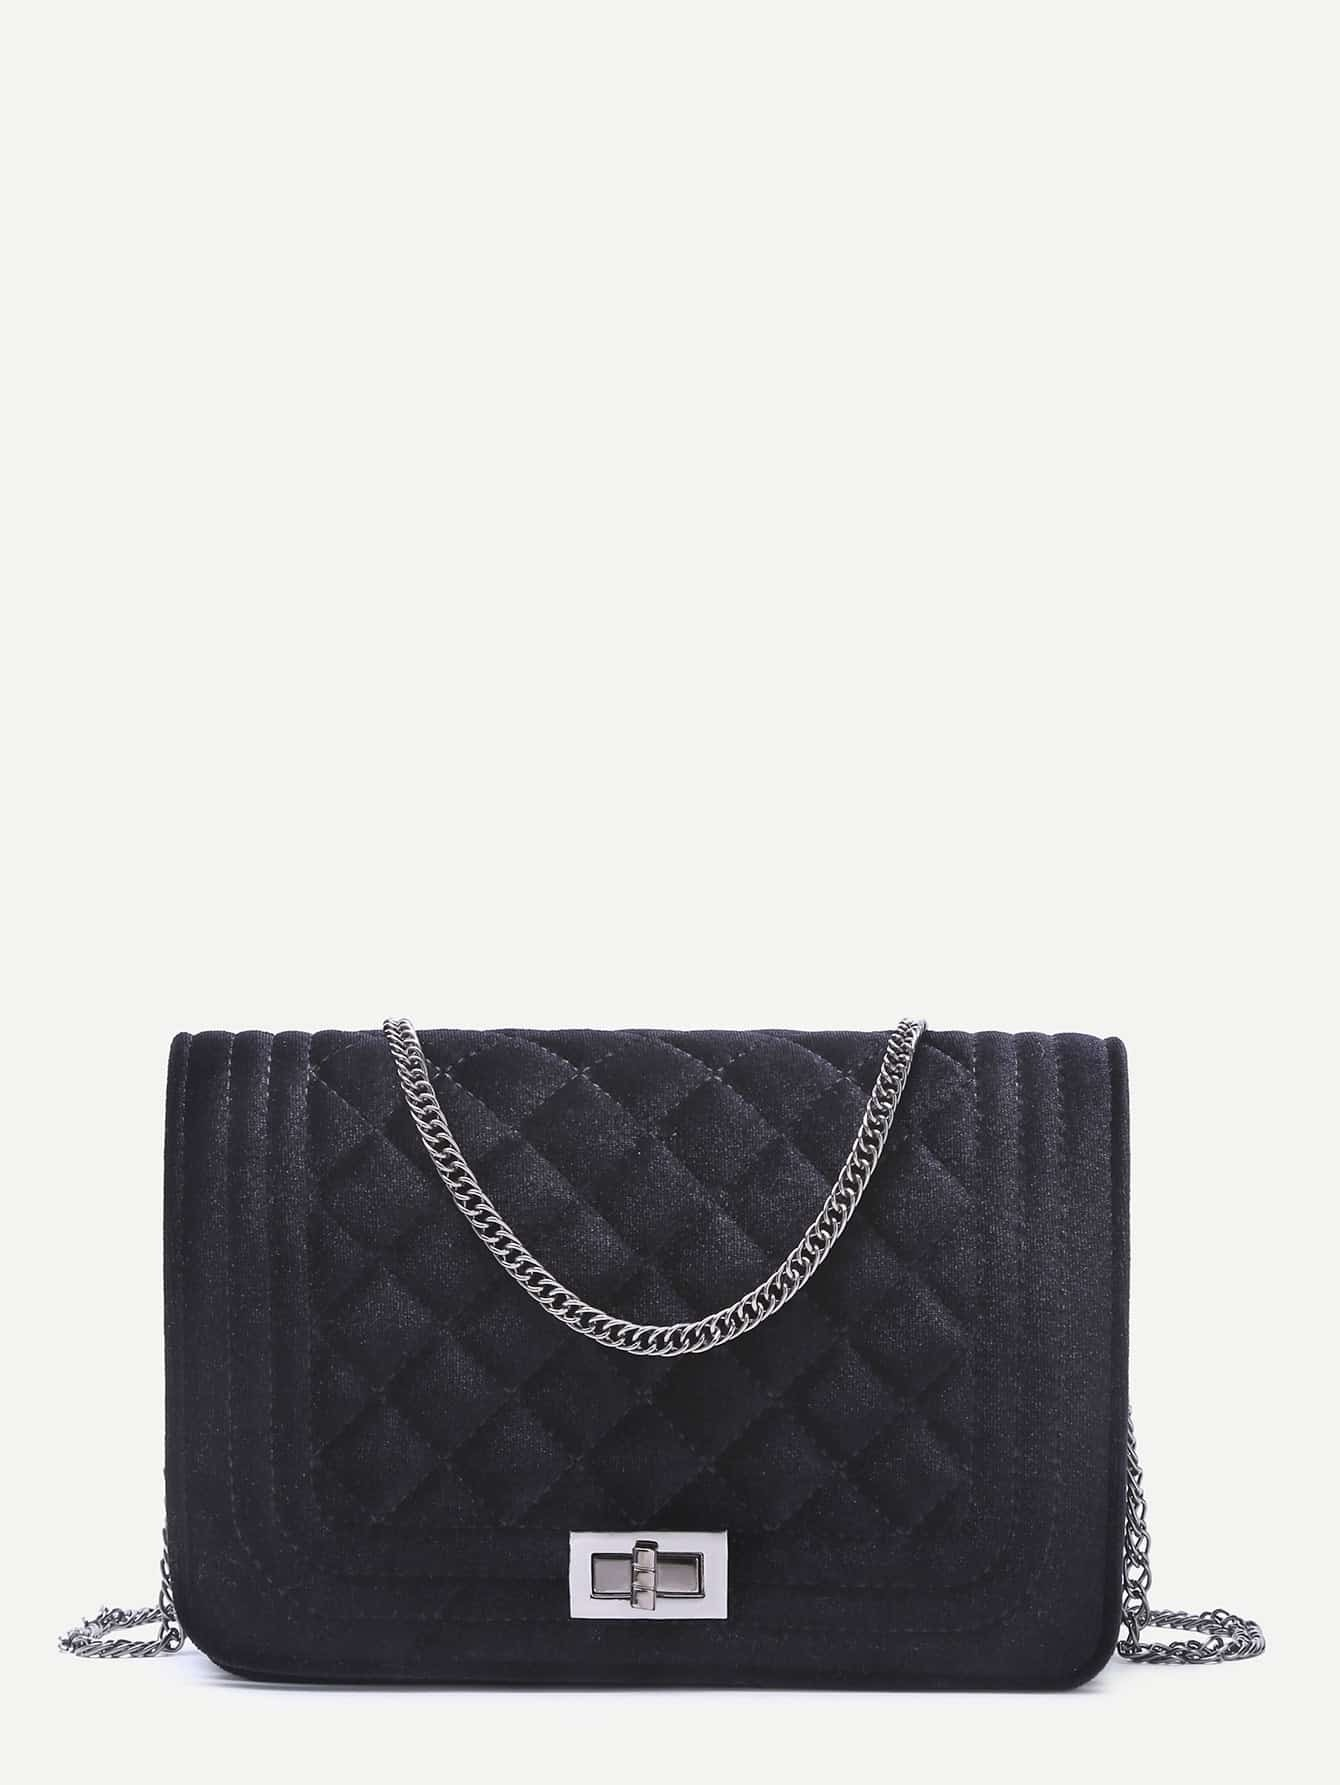 Black Velvet Quilted Mini Flap Chain BagBlack Velvet Quilted Mini Flap Chain Bag<br><br>color: Black<br>size: None